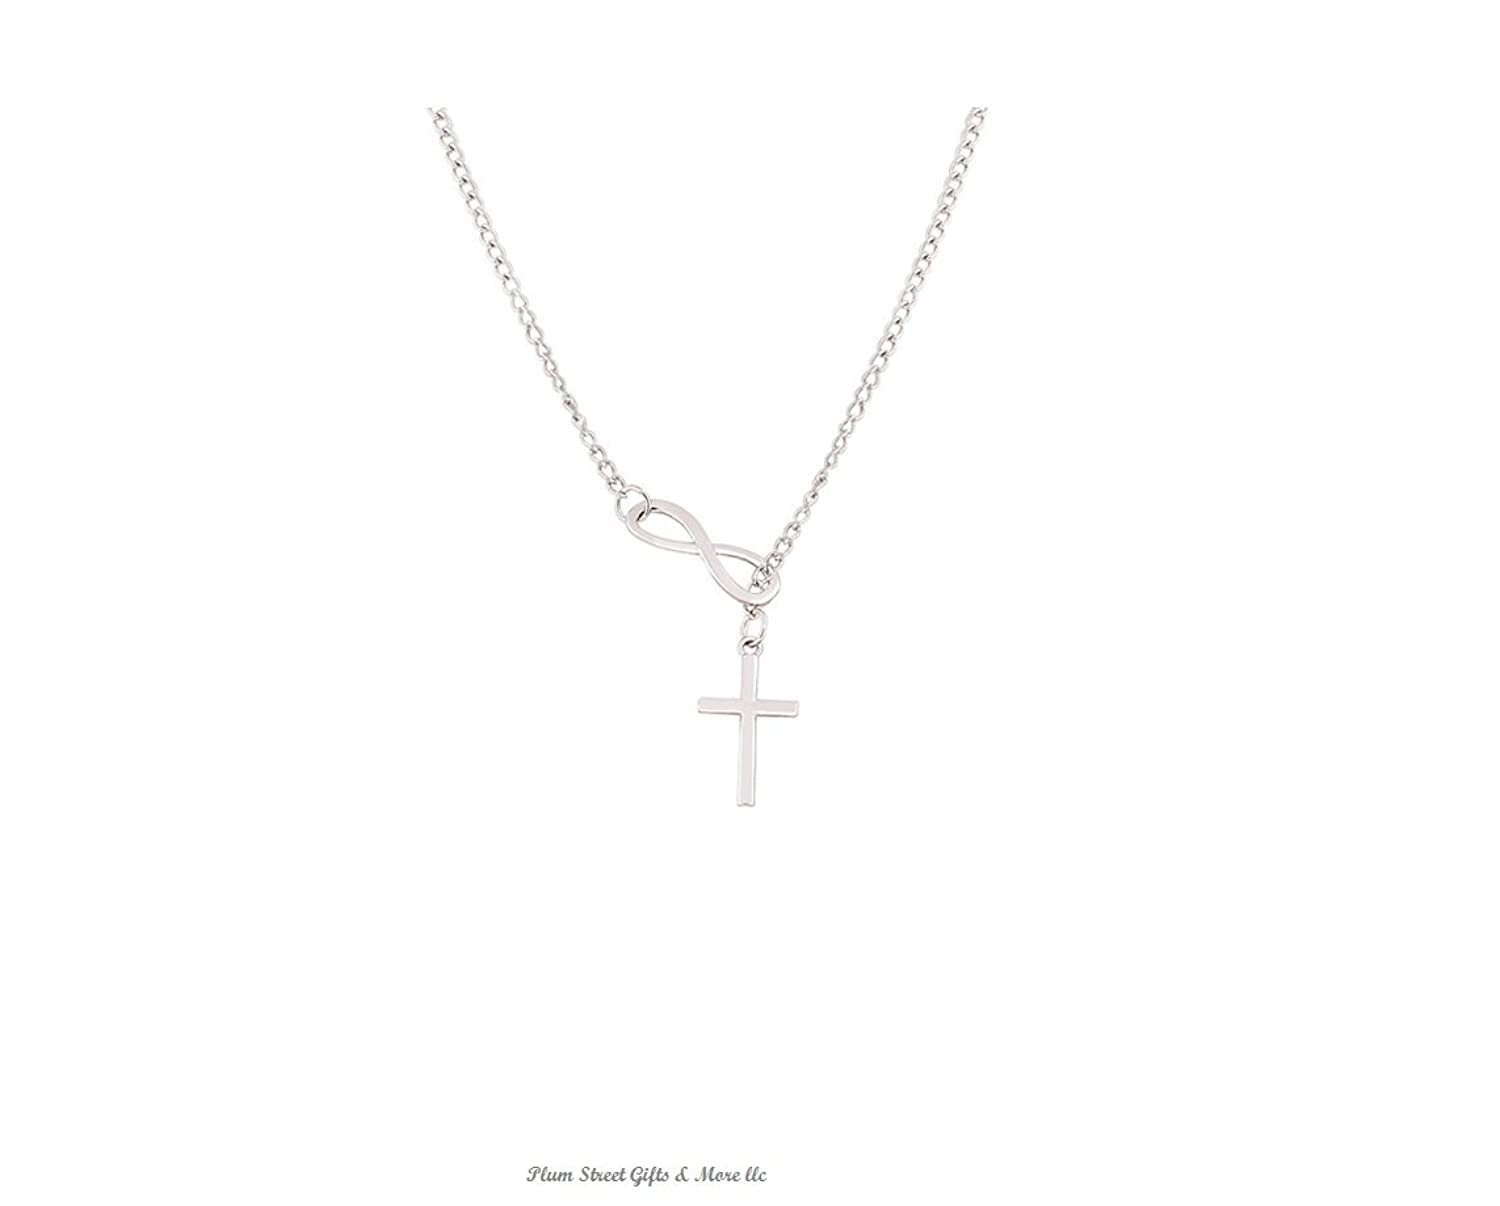 Amazon stylish infinity cross pendant necklace jewelry aloadofball Images